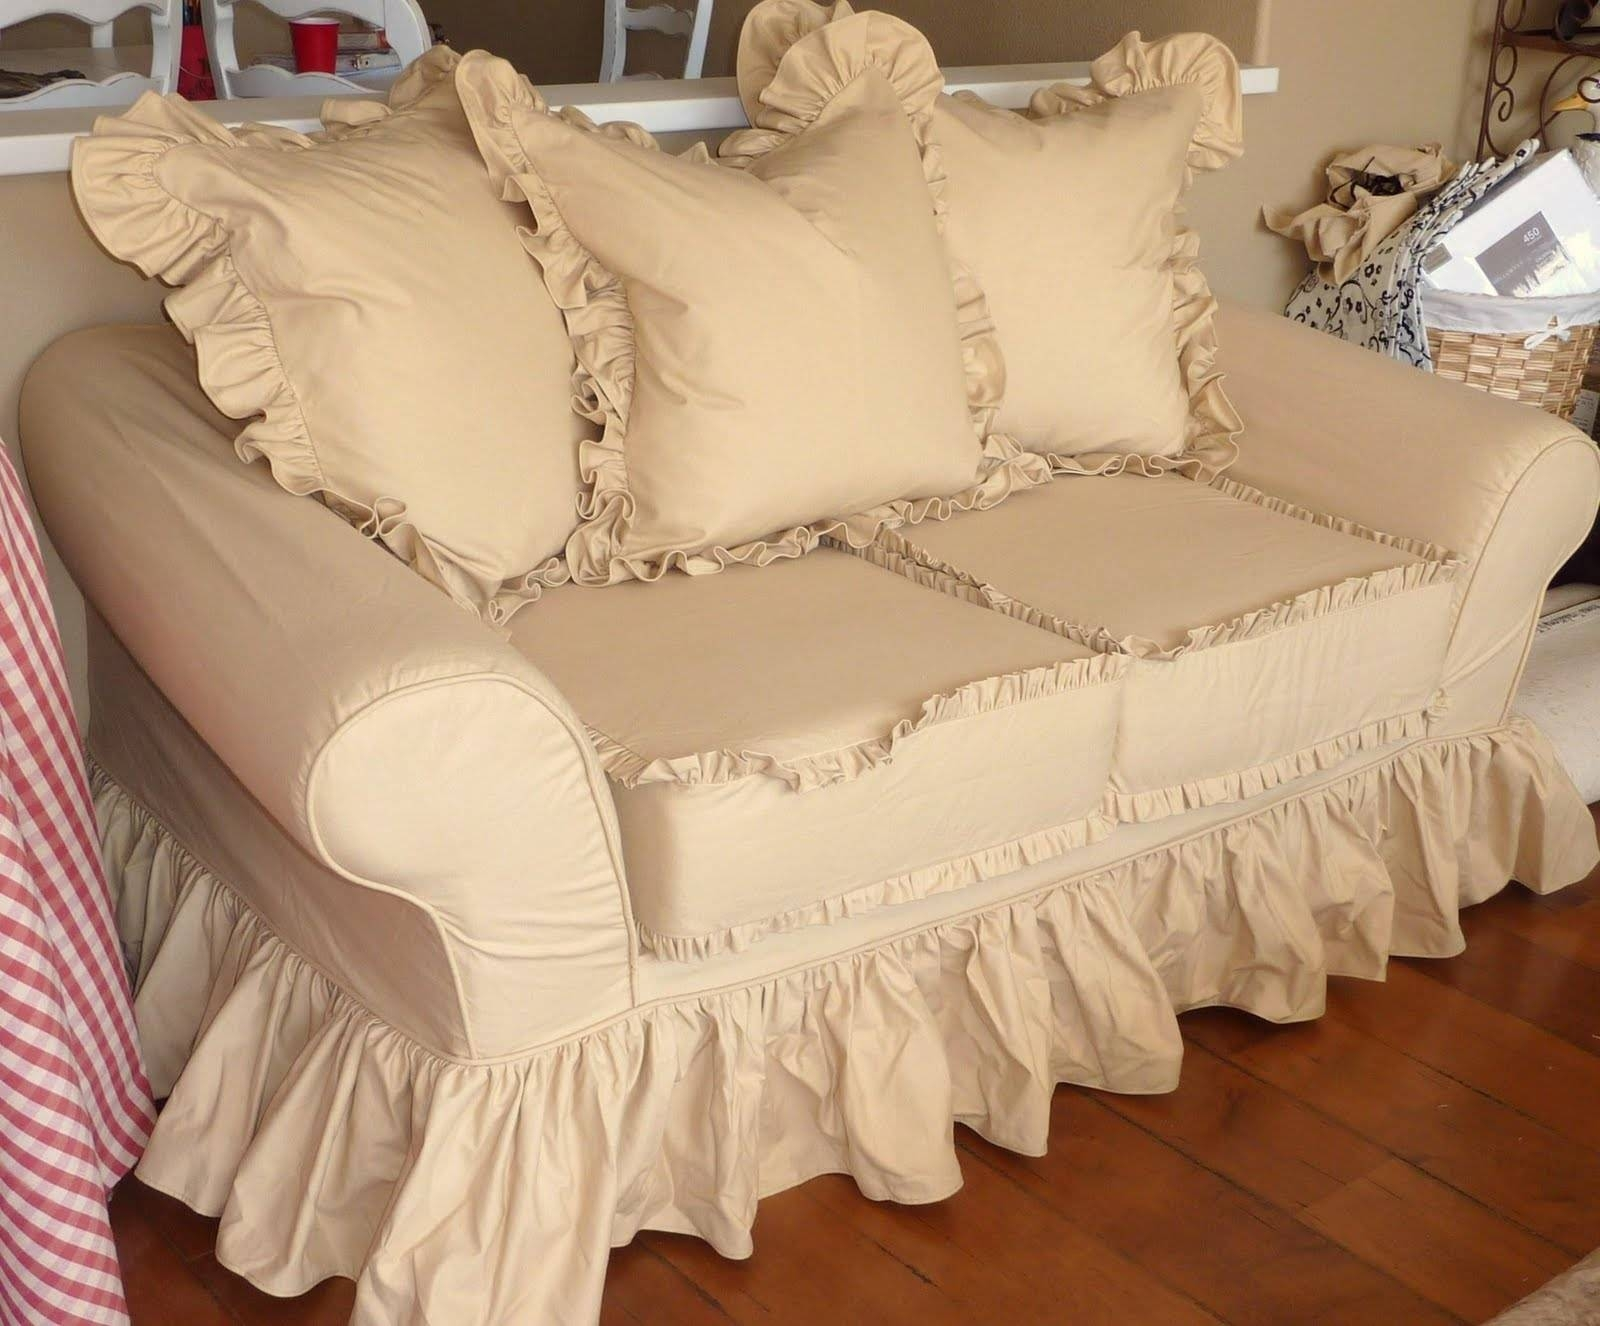 12 Best Of Contemporary Sofa Slipcovers intended for Contemporary Sofa Slipcovers (Image 4 of 30)